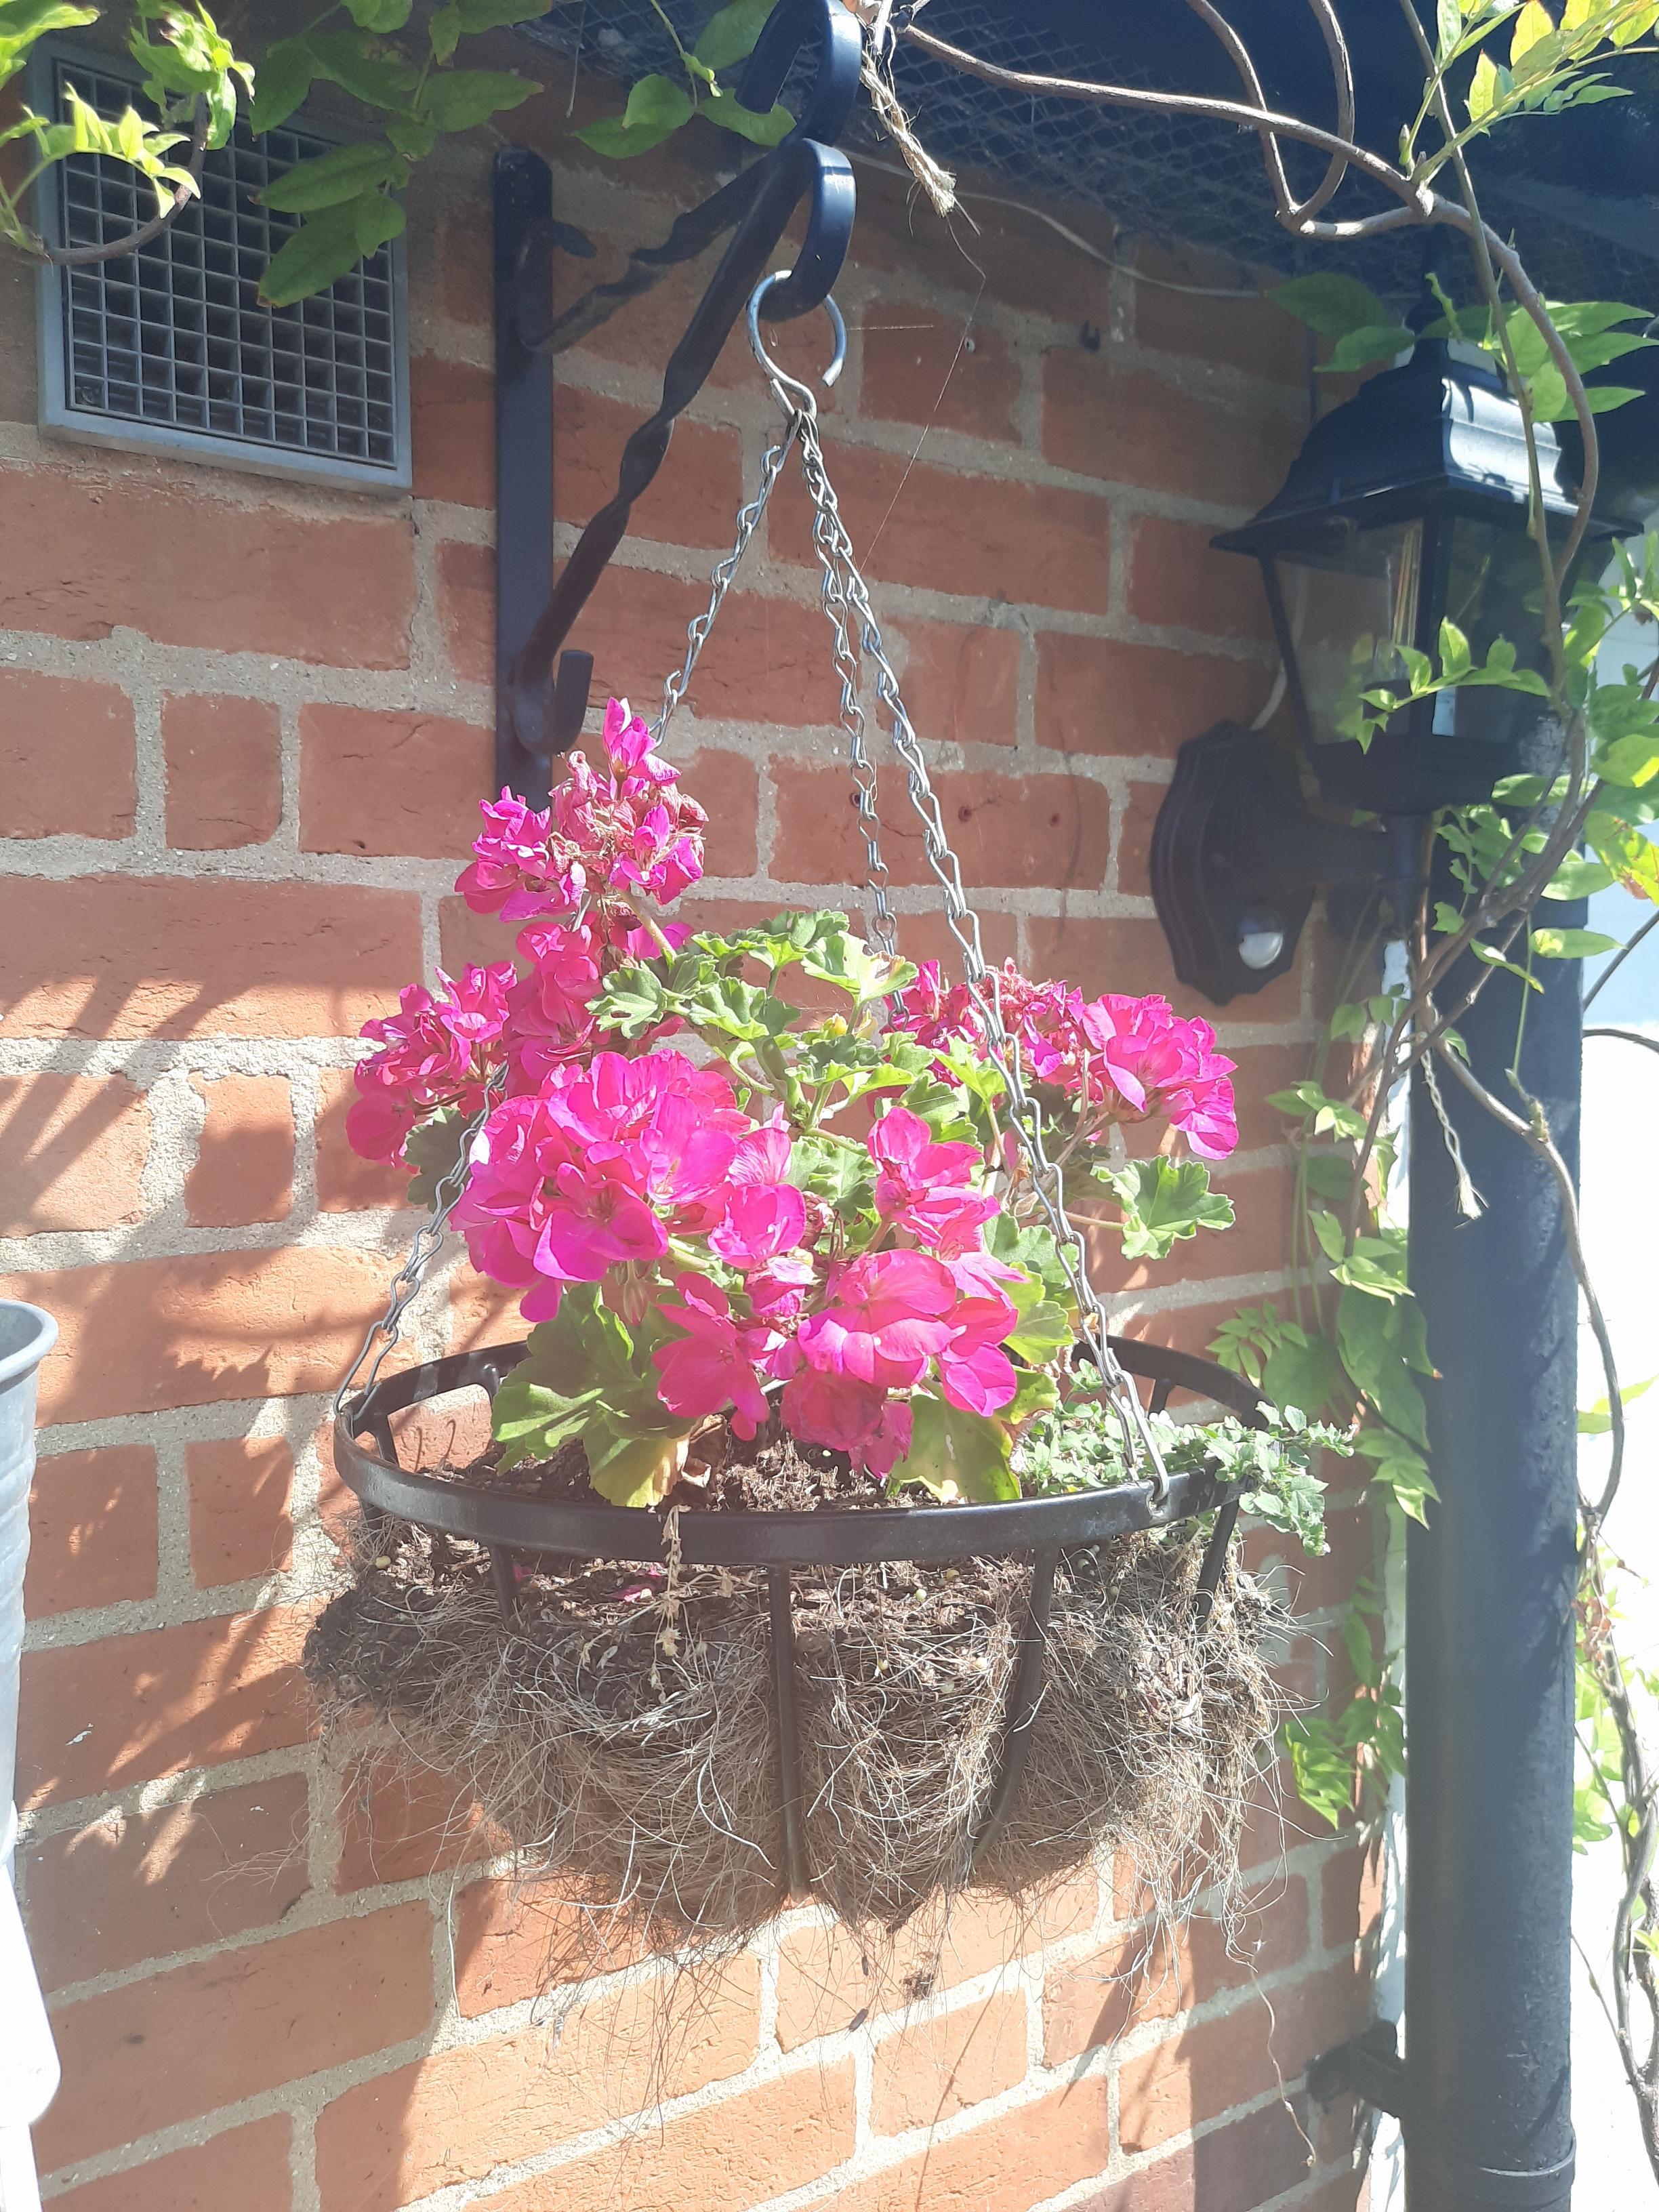 Hanging Baskets, Fuchsia Flowers